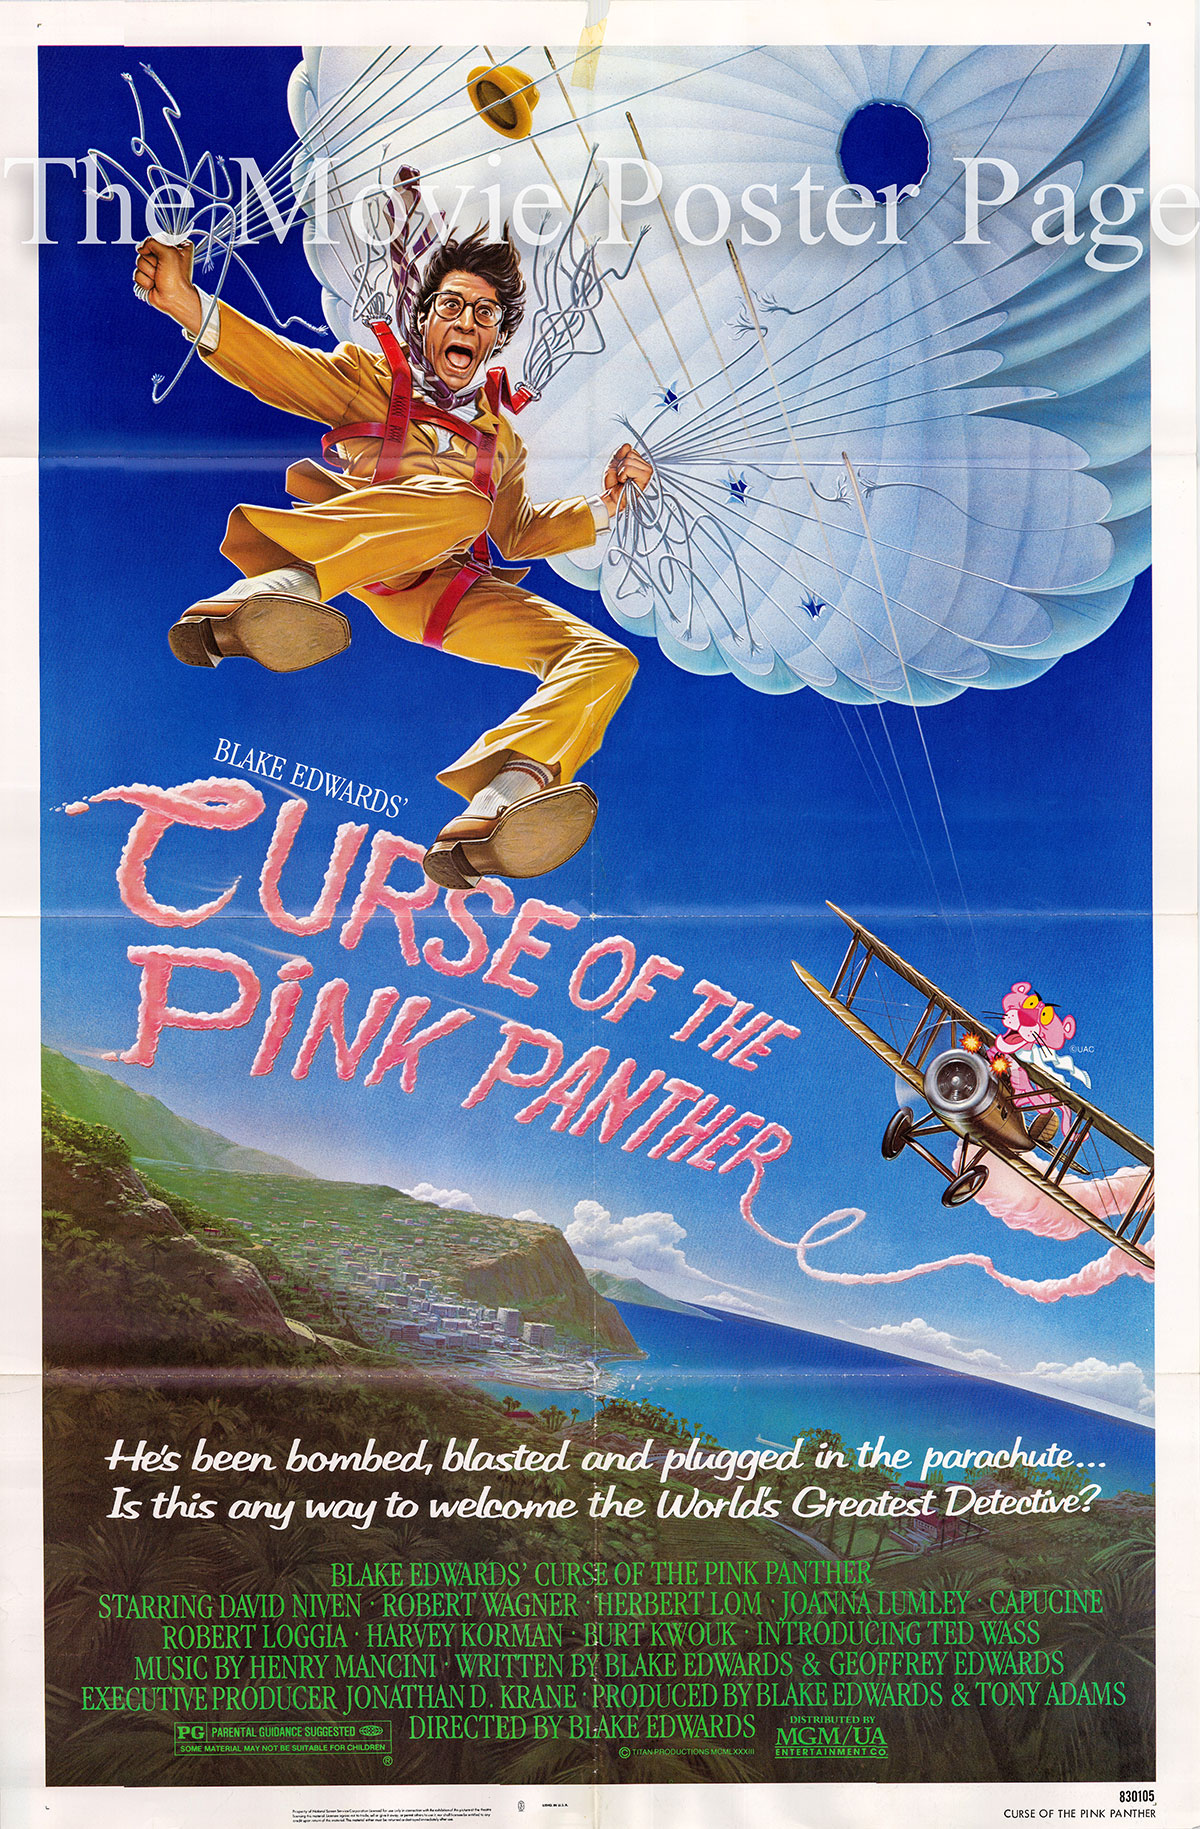 Pictured is a US one-sheet poster for the 1983 Blake Edwards film the Curse of the Pink Panther, starring Peter Sellers.